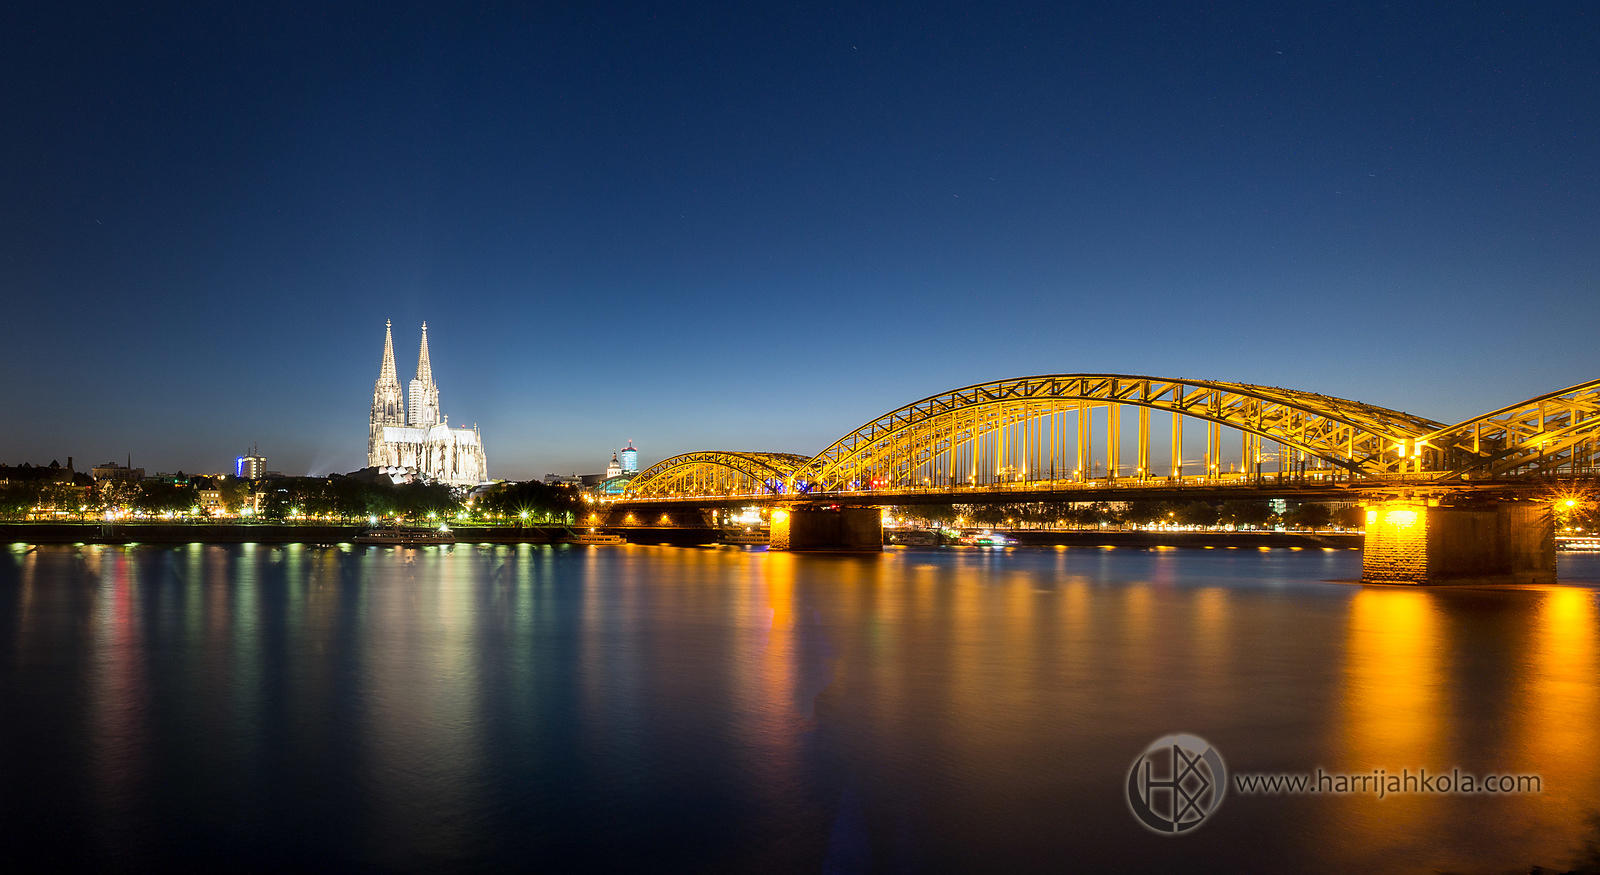 Germany - Cologne (Rhine Panorama)